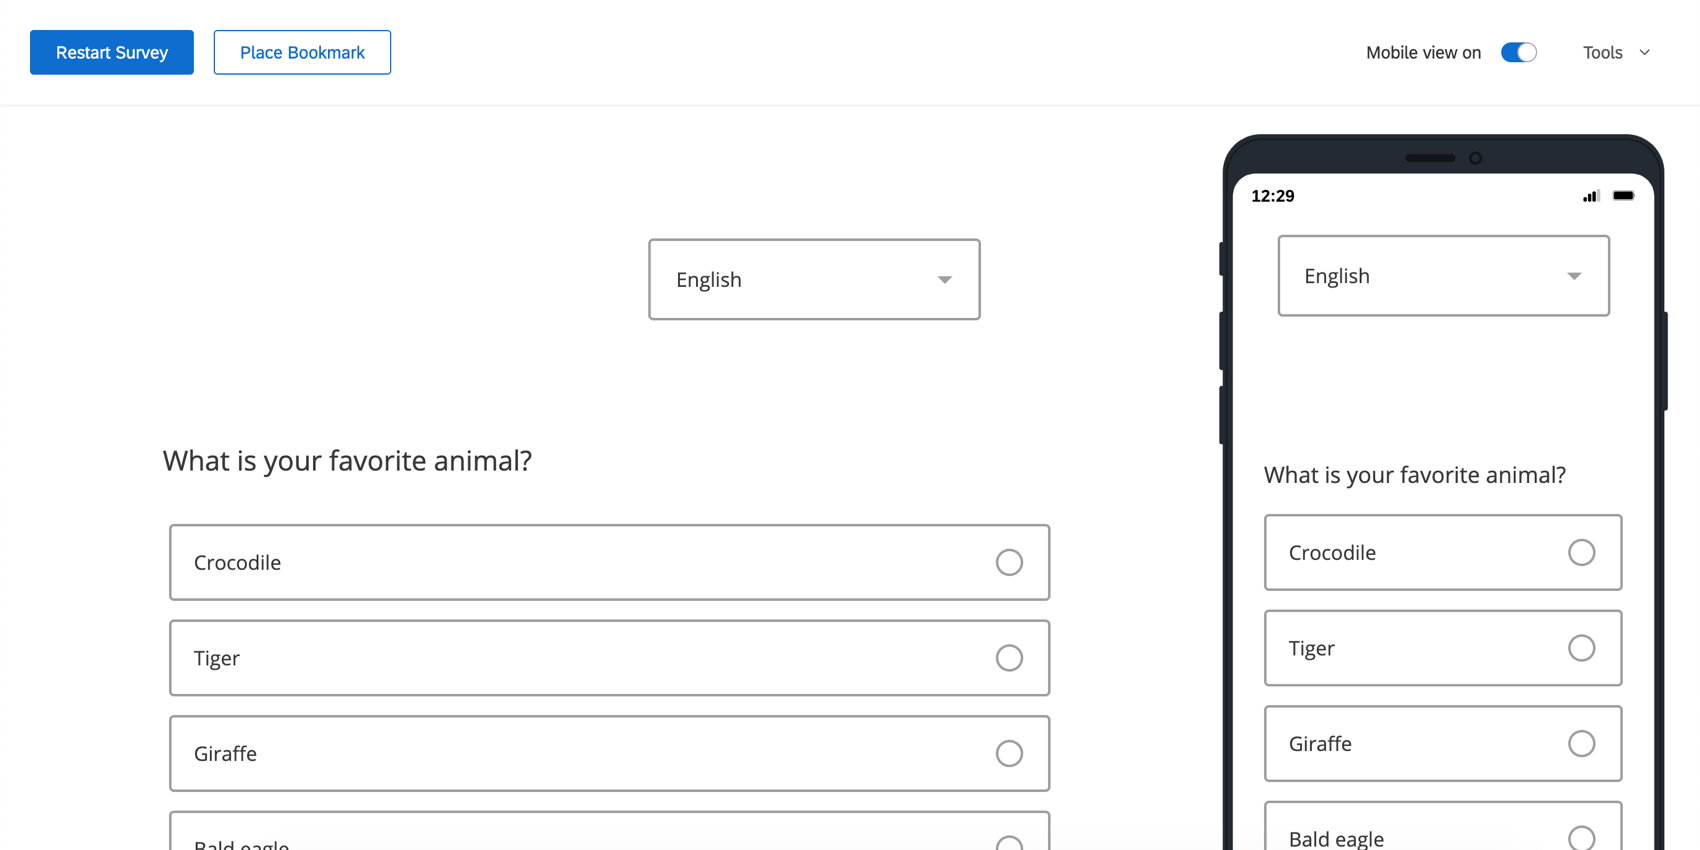 The Preview Survey page